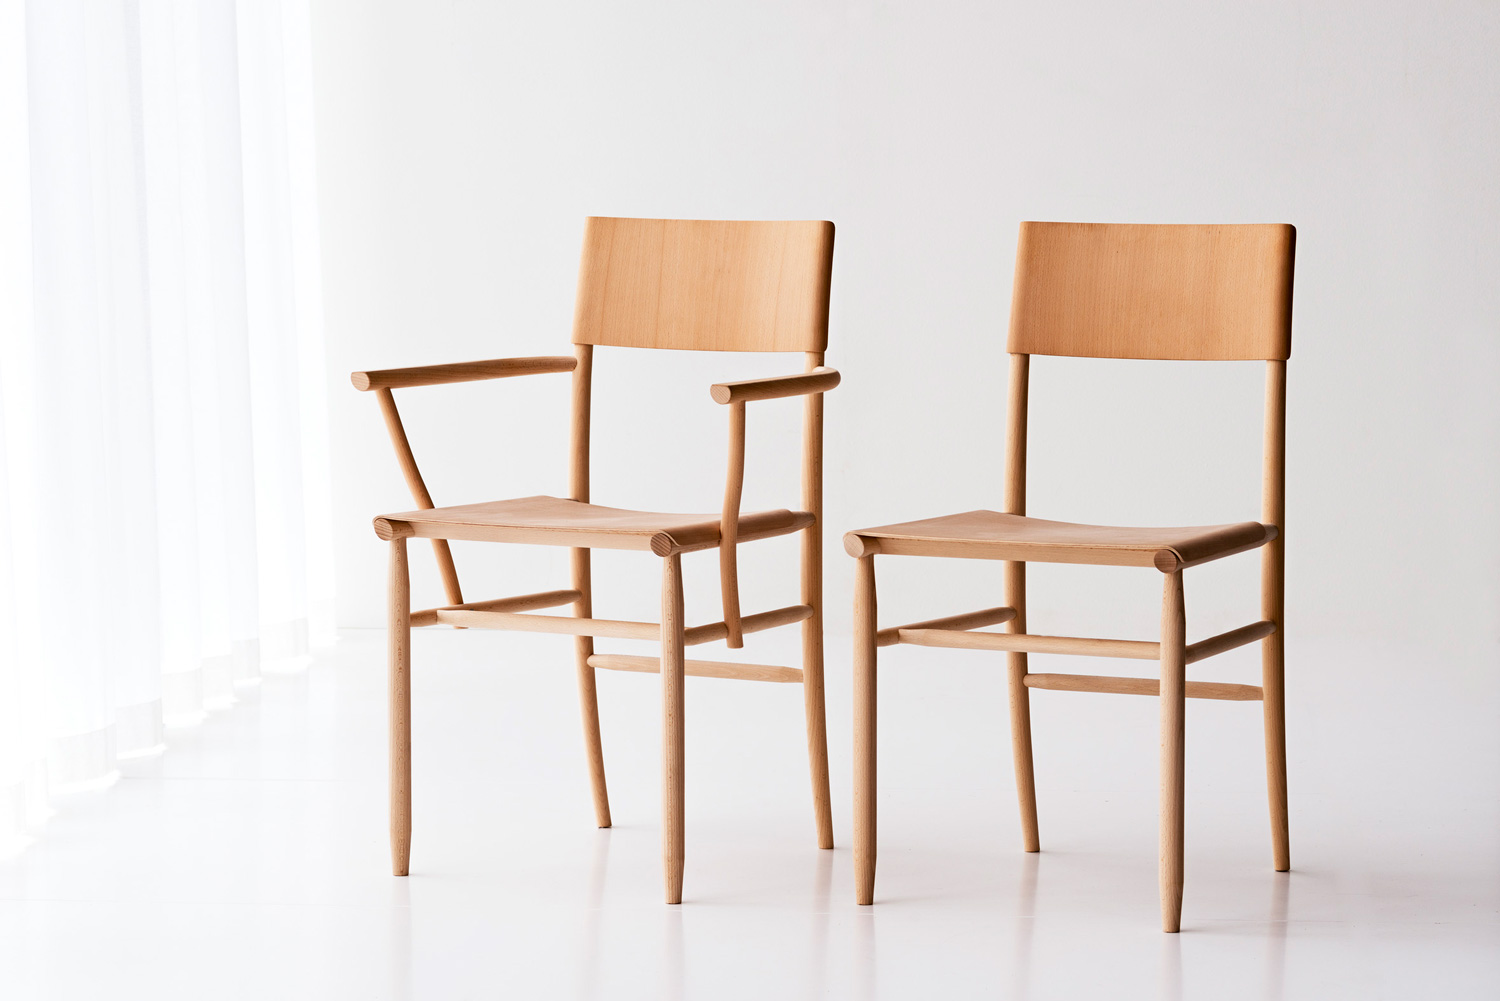 MadonnaI I & II Chair by David Ericsson & Garsnas at Stockholm Design Week 2015 | Yellowtrace